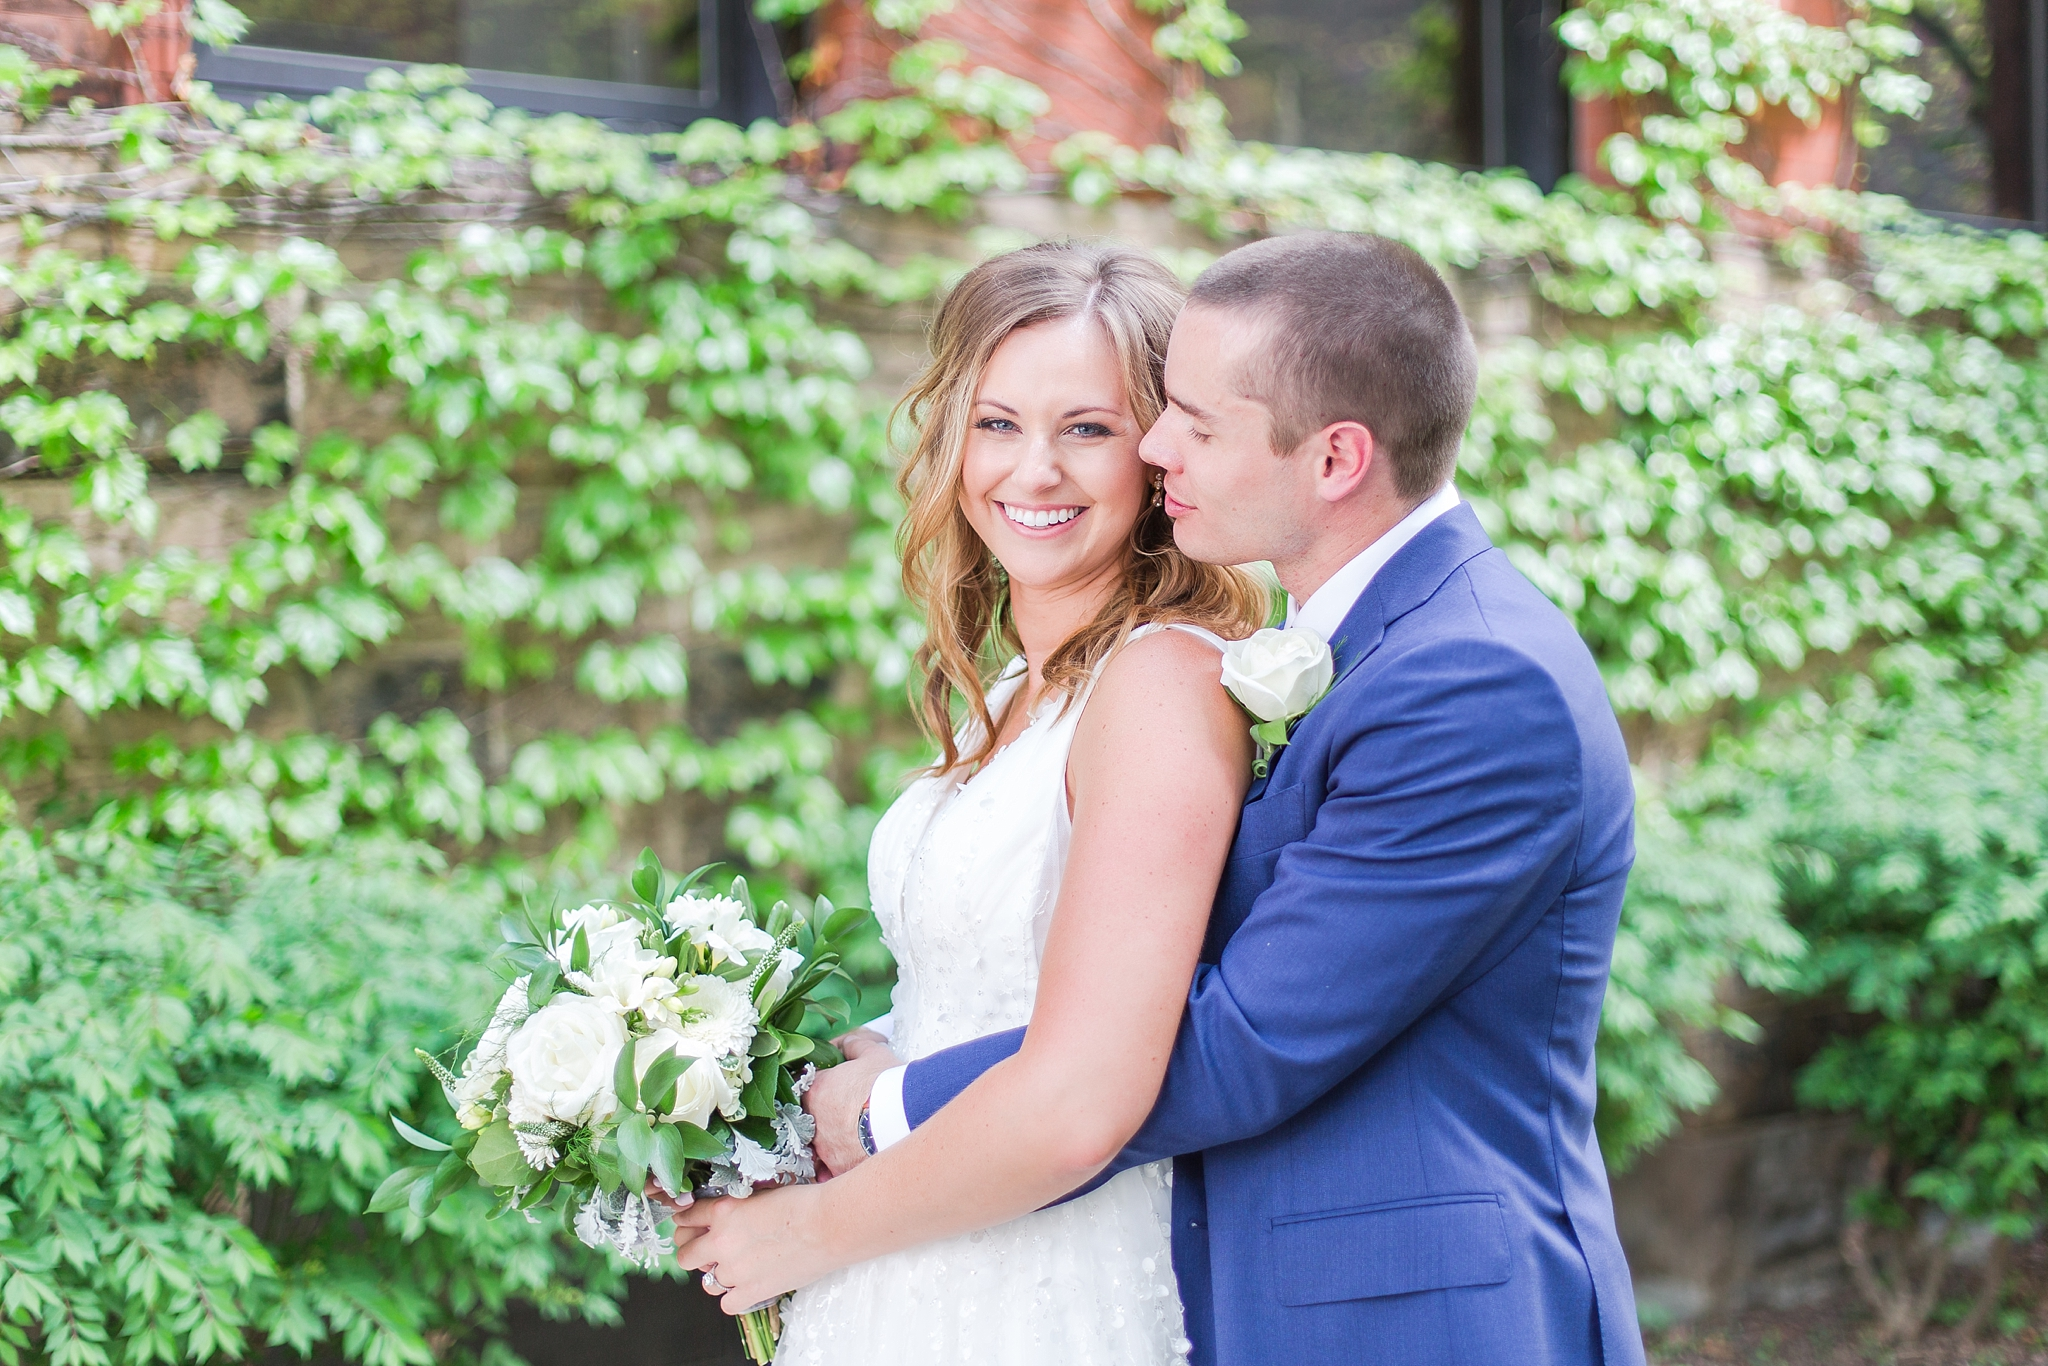 joyful-candid-laid-back-wedding-photos-in-ann-arbor-michigan-and-at-the-eagle-crest-golf-resort-by-courtney-carolyn-photography_0046.jpg